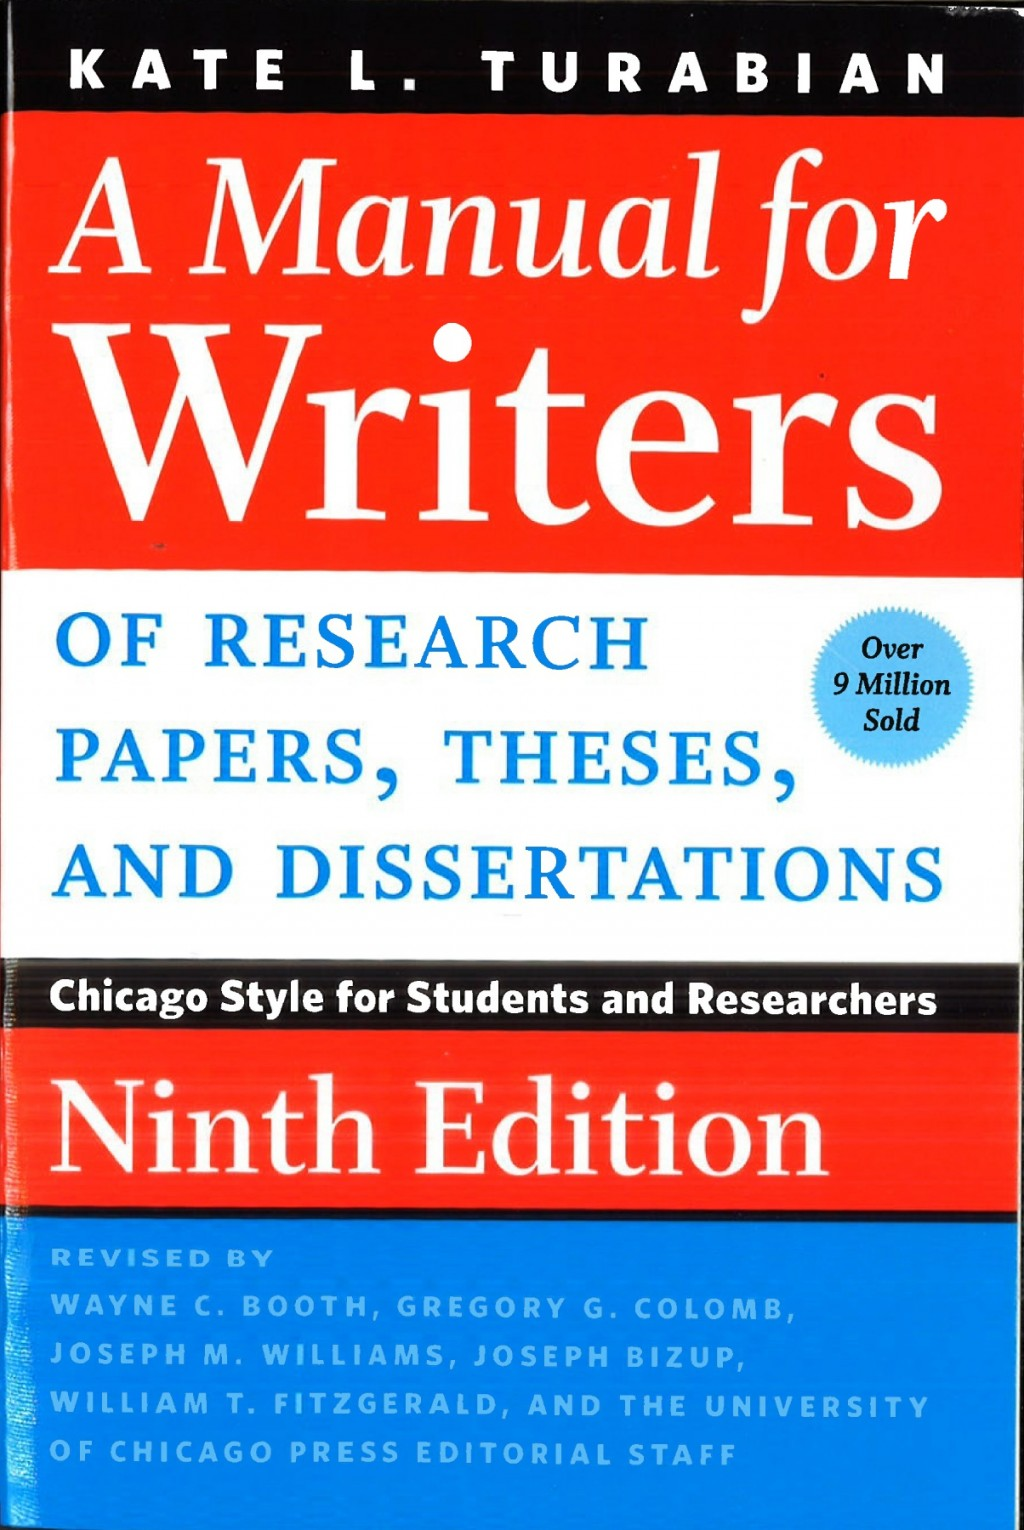 007 Research Paper Manual For Writers Of Papers Theses And Dissertations Amazing A Turabian Pdf Large